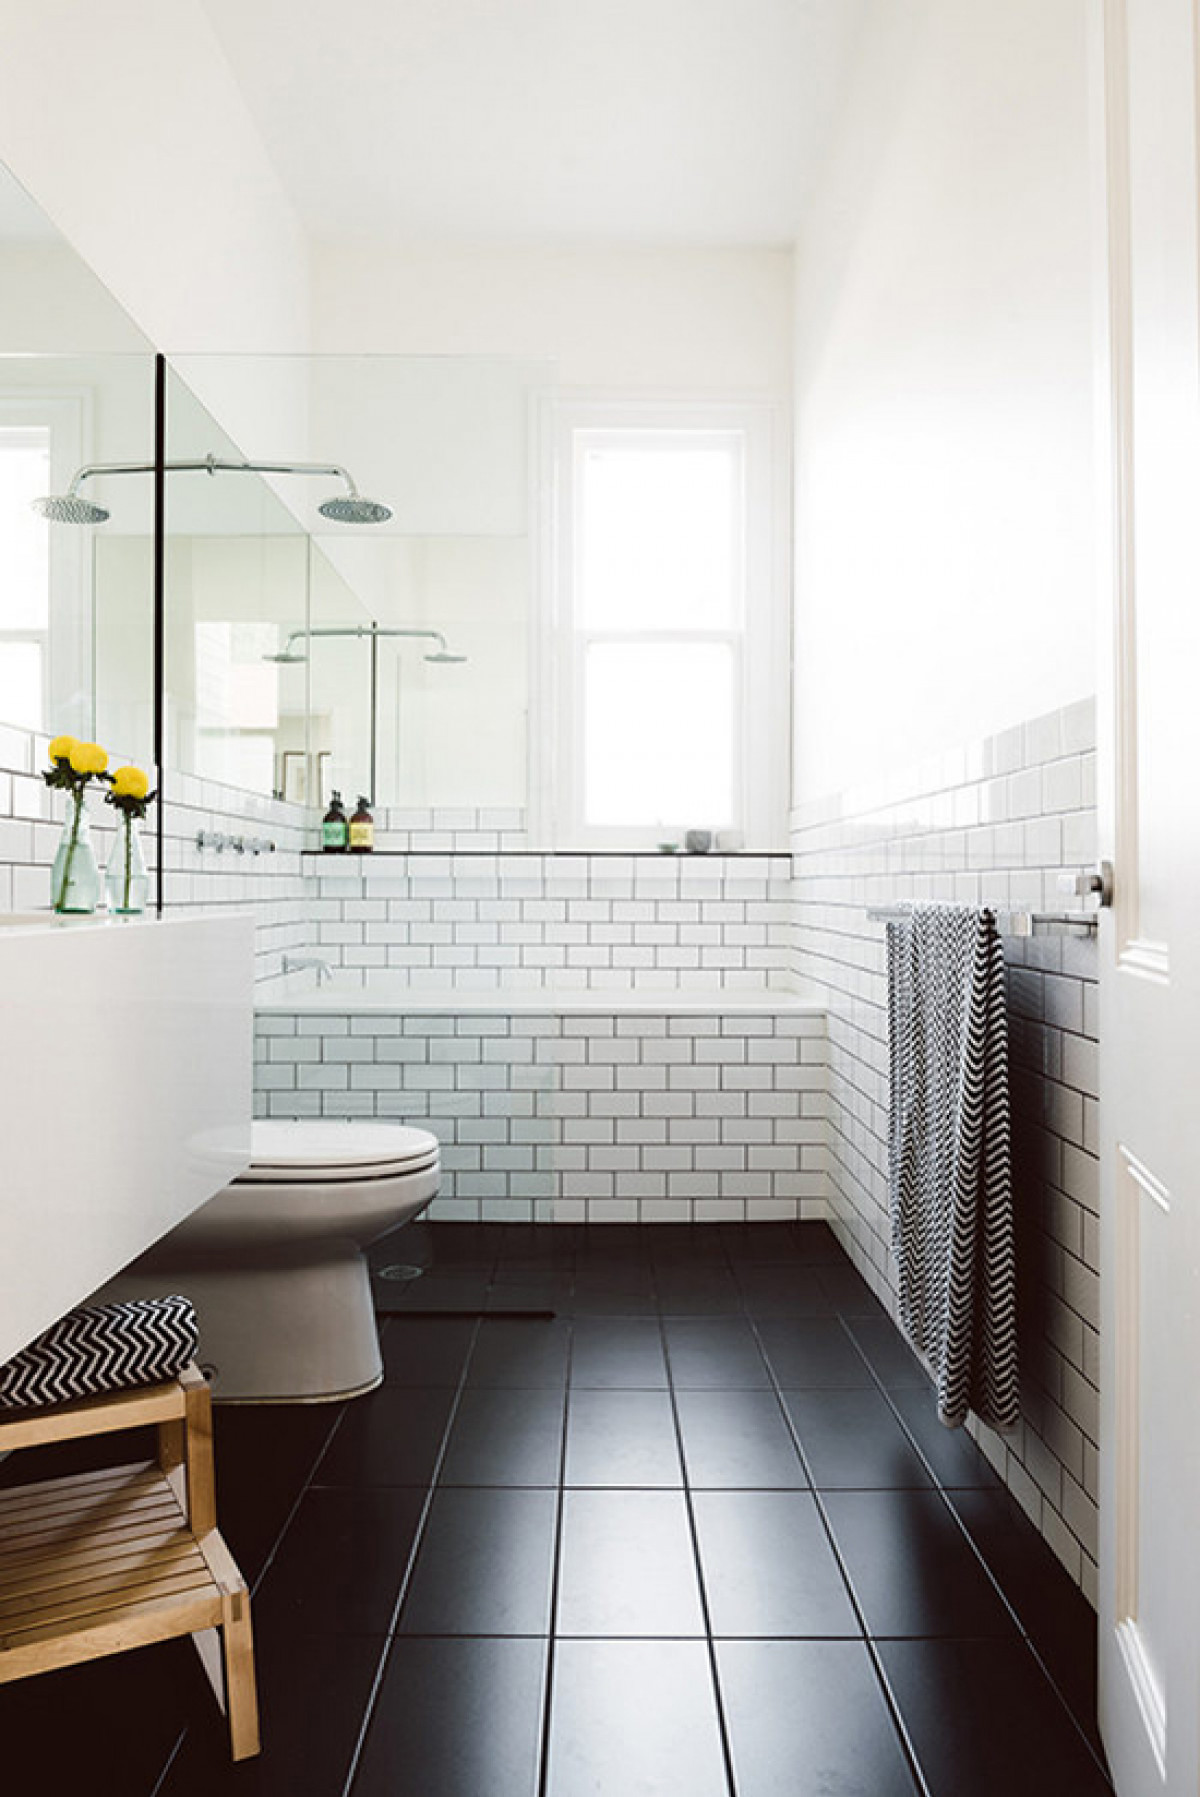 26 Small Bathroom Ideas Images To